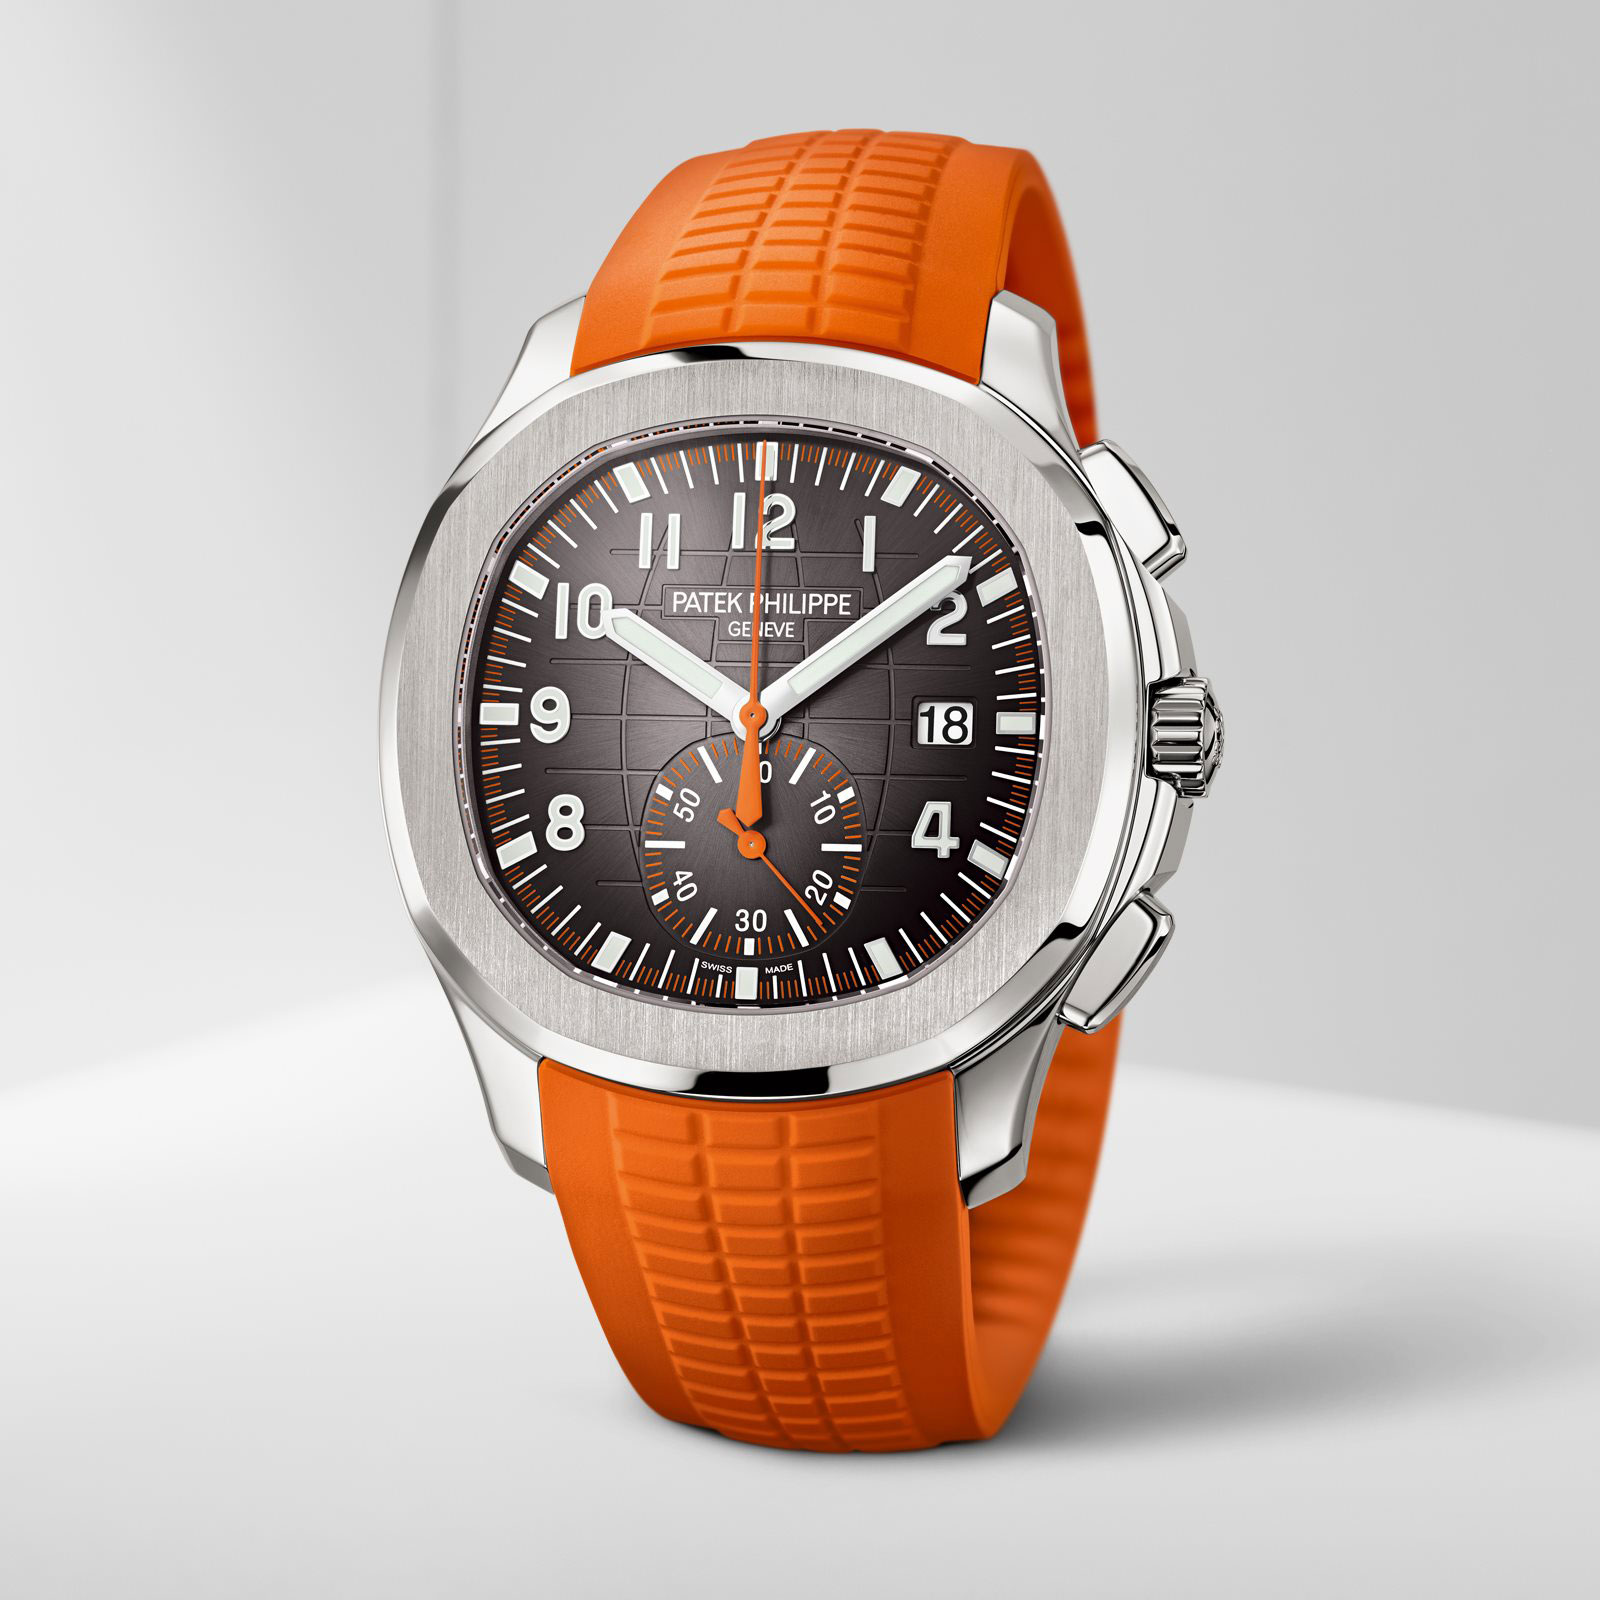 Baselworld 2018 Patek Philippe Introduces The Aquanaut